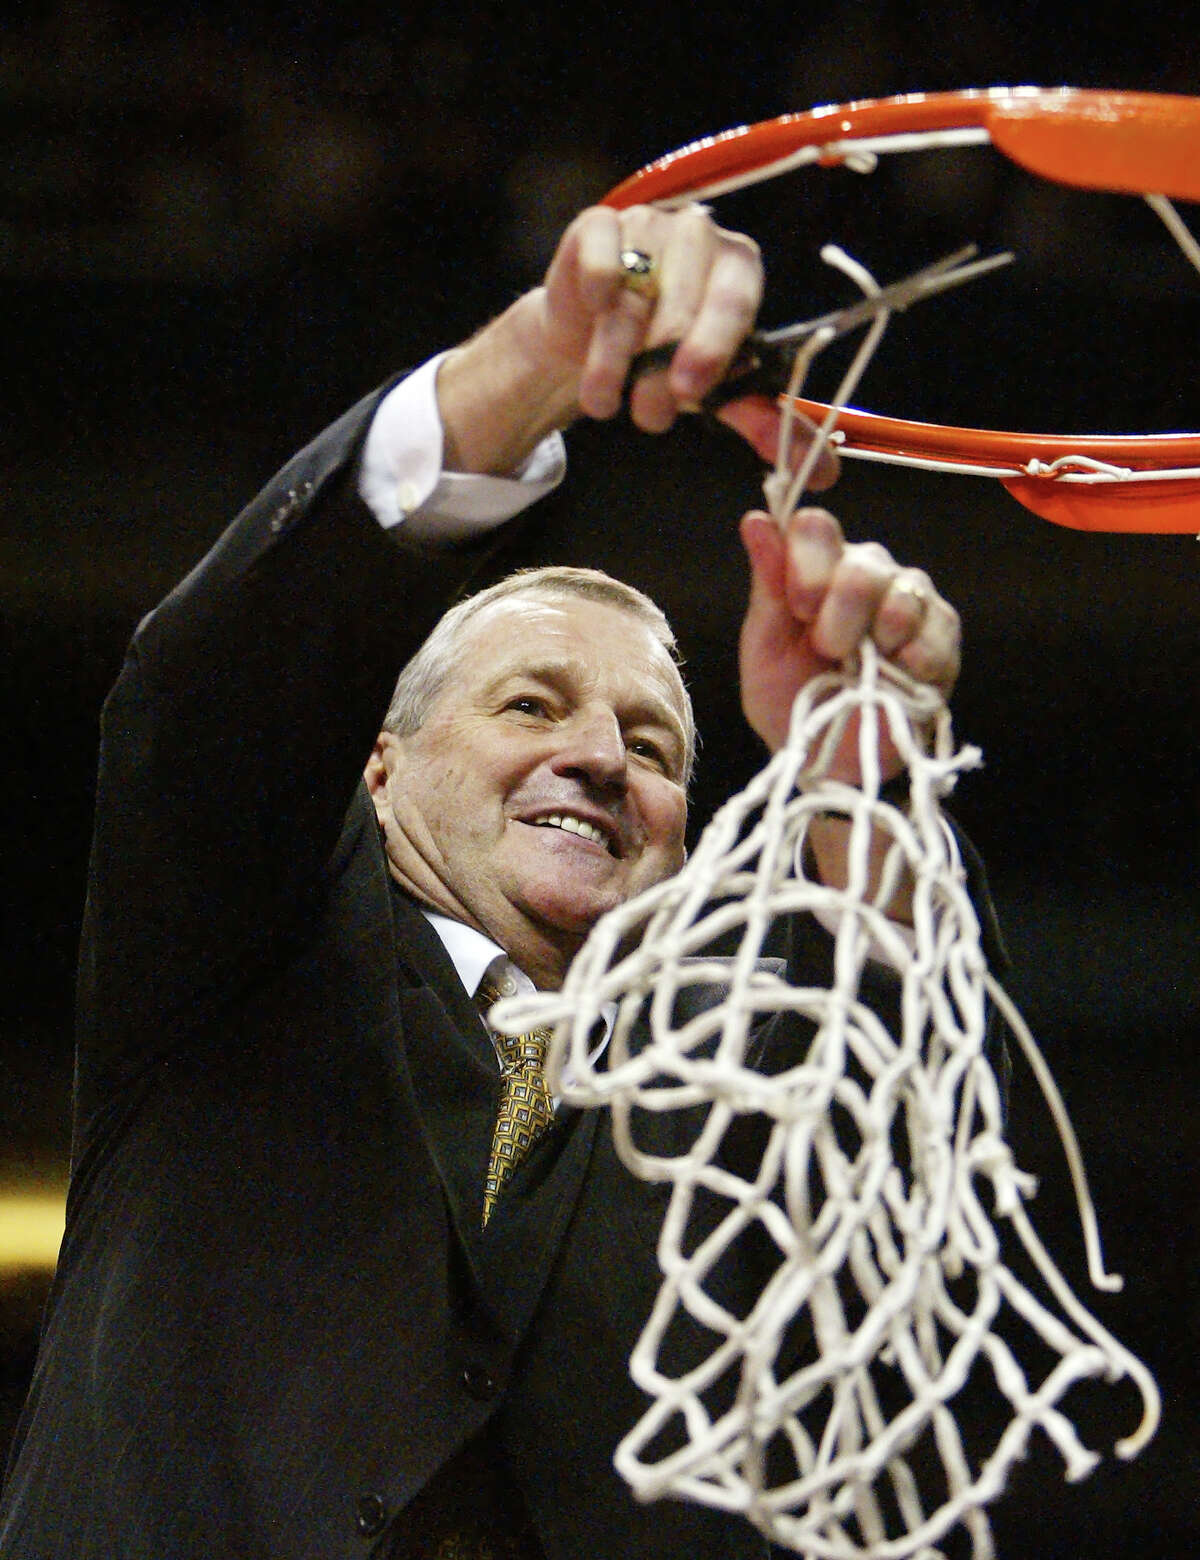 Connecticut coach Jim Calhoun cuts down the net at the NCAA Phoenix Regional Finals, Saturday, March 27, 2004. Connecticut beat Alabama, 87-71, to proceed to the Final Four.